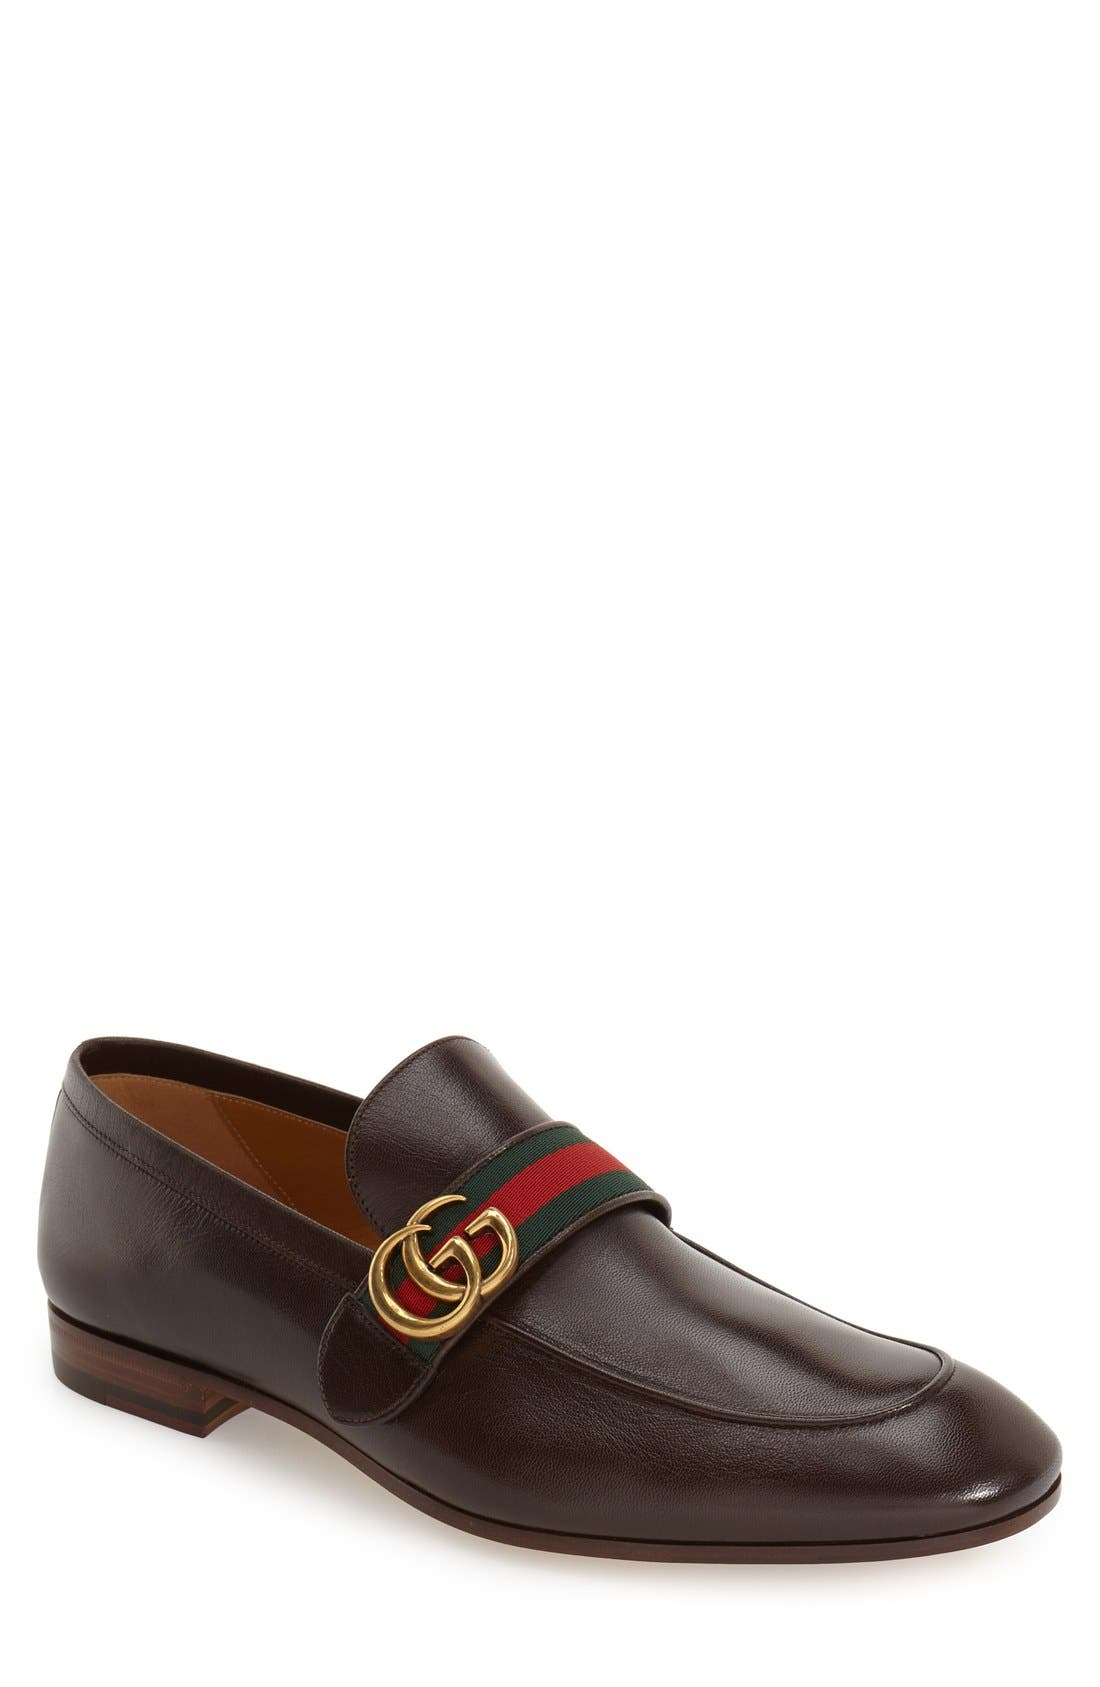 Donnie Bit Loafer,                         Main,                         color, Cocoa Leather